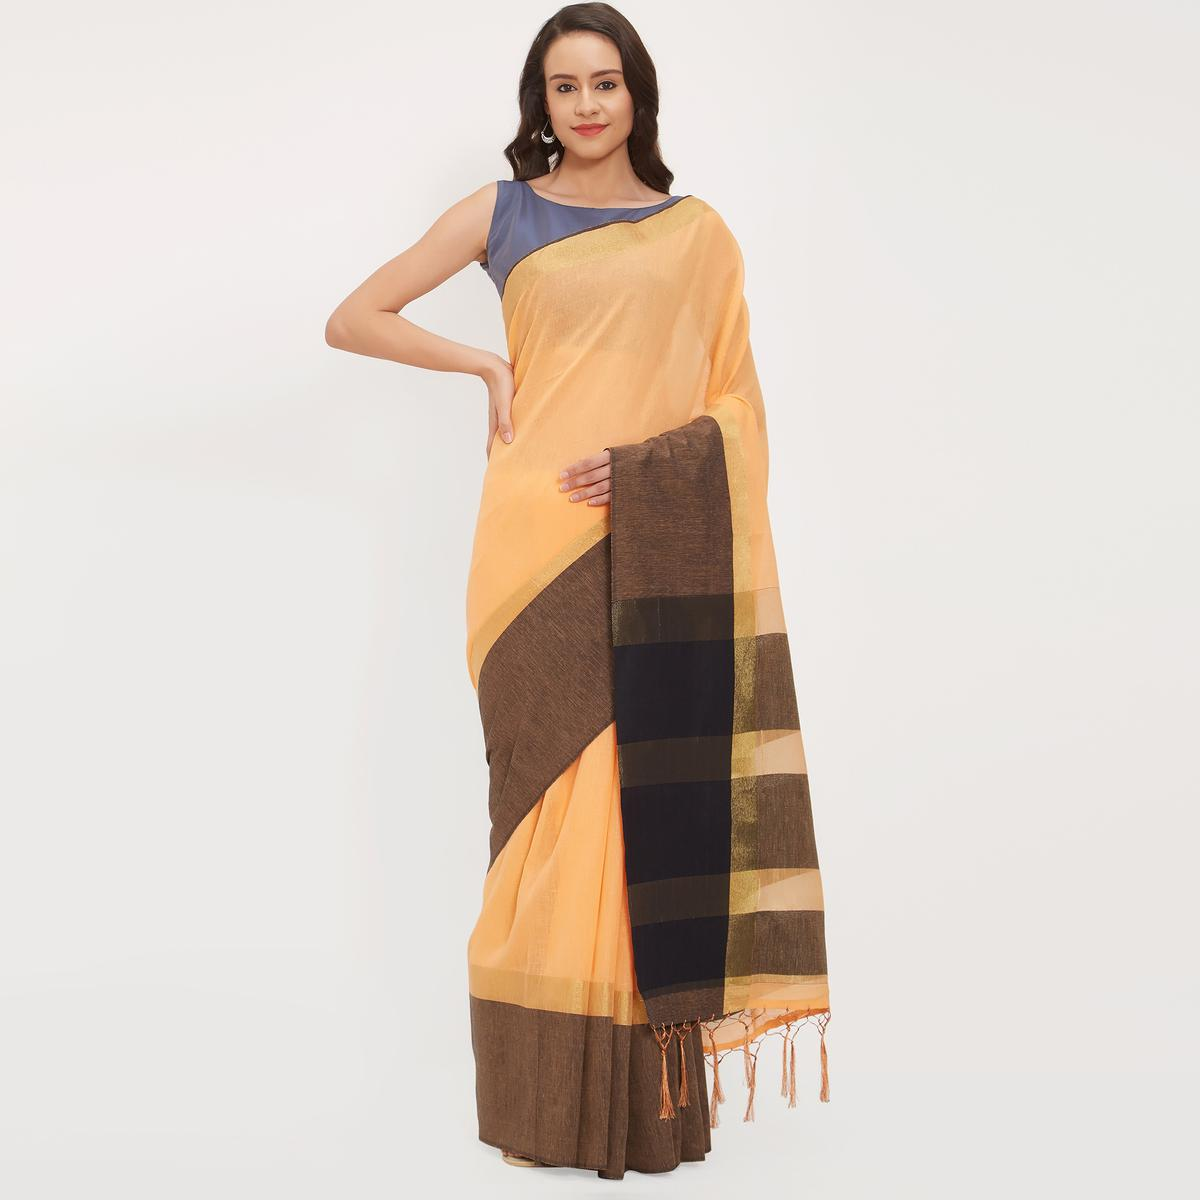 Blissful Light Orange Colored Casual Wear Linen Saree With 2 Blouse Pieces